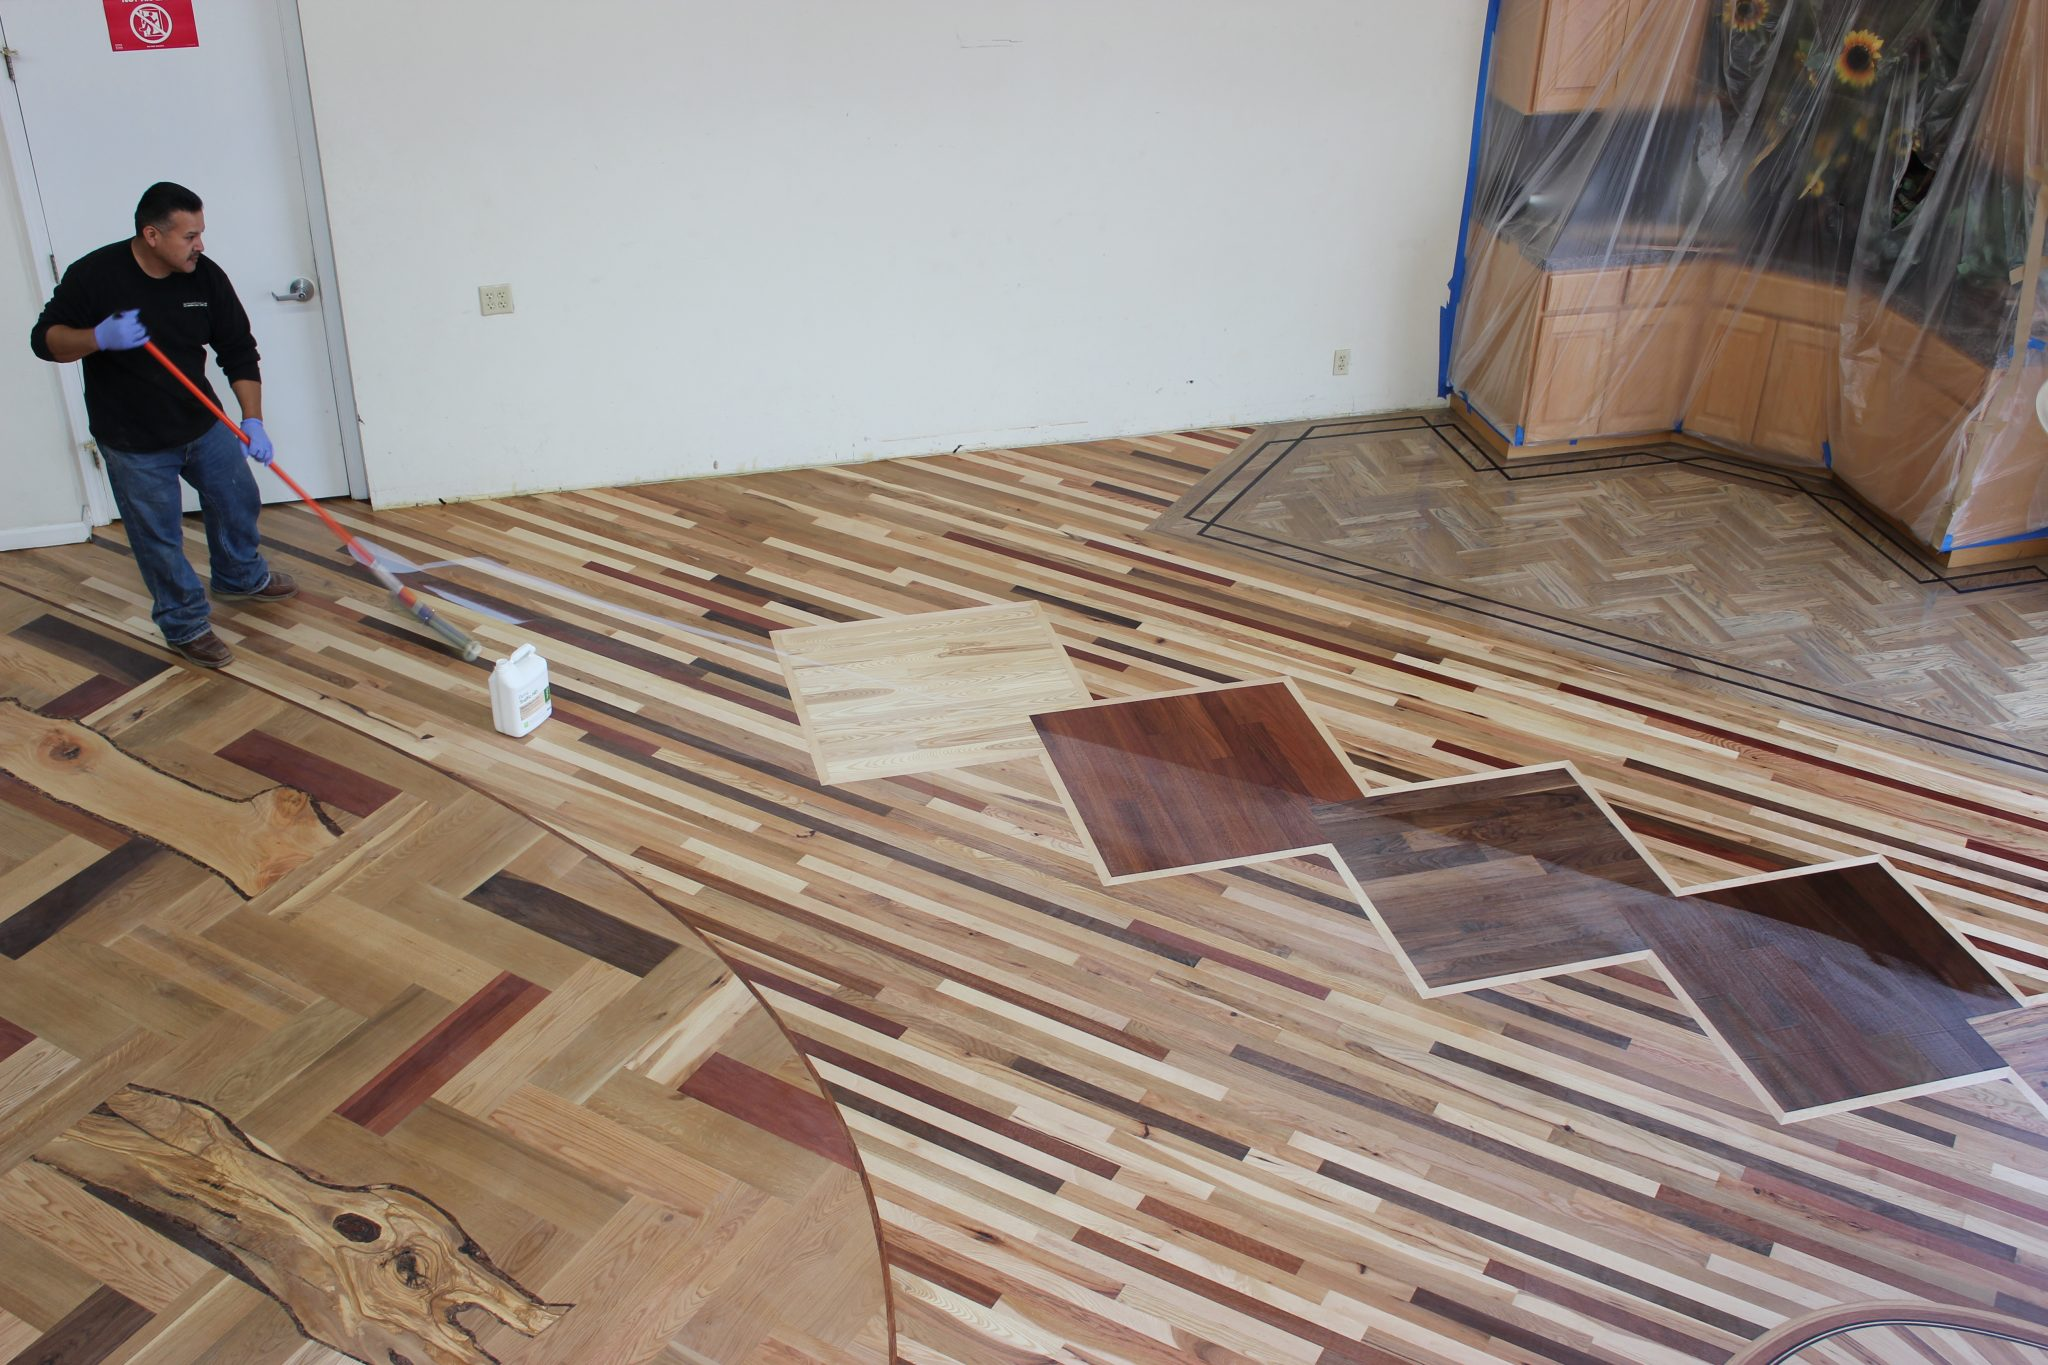 Applying finish and sealing the floors   Slaughterbeck Floors